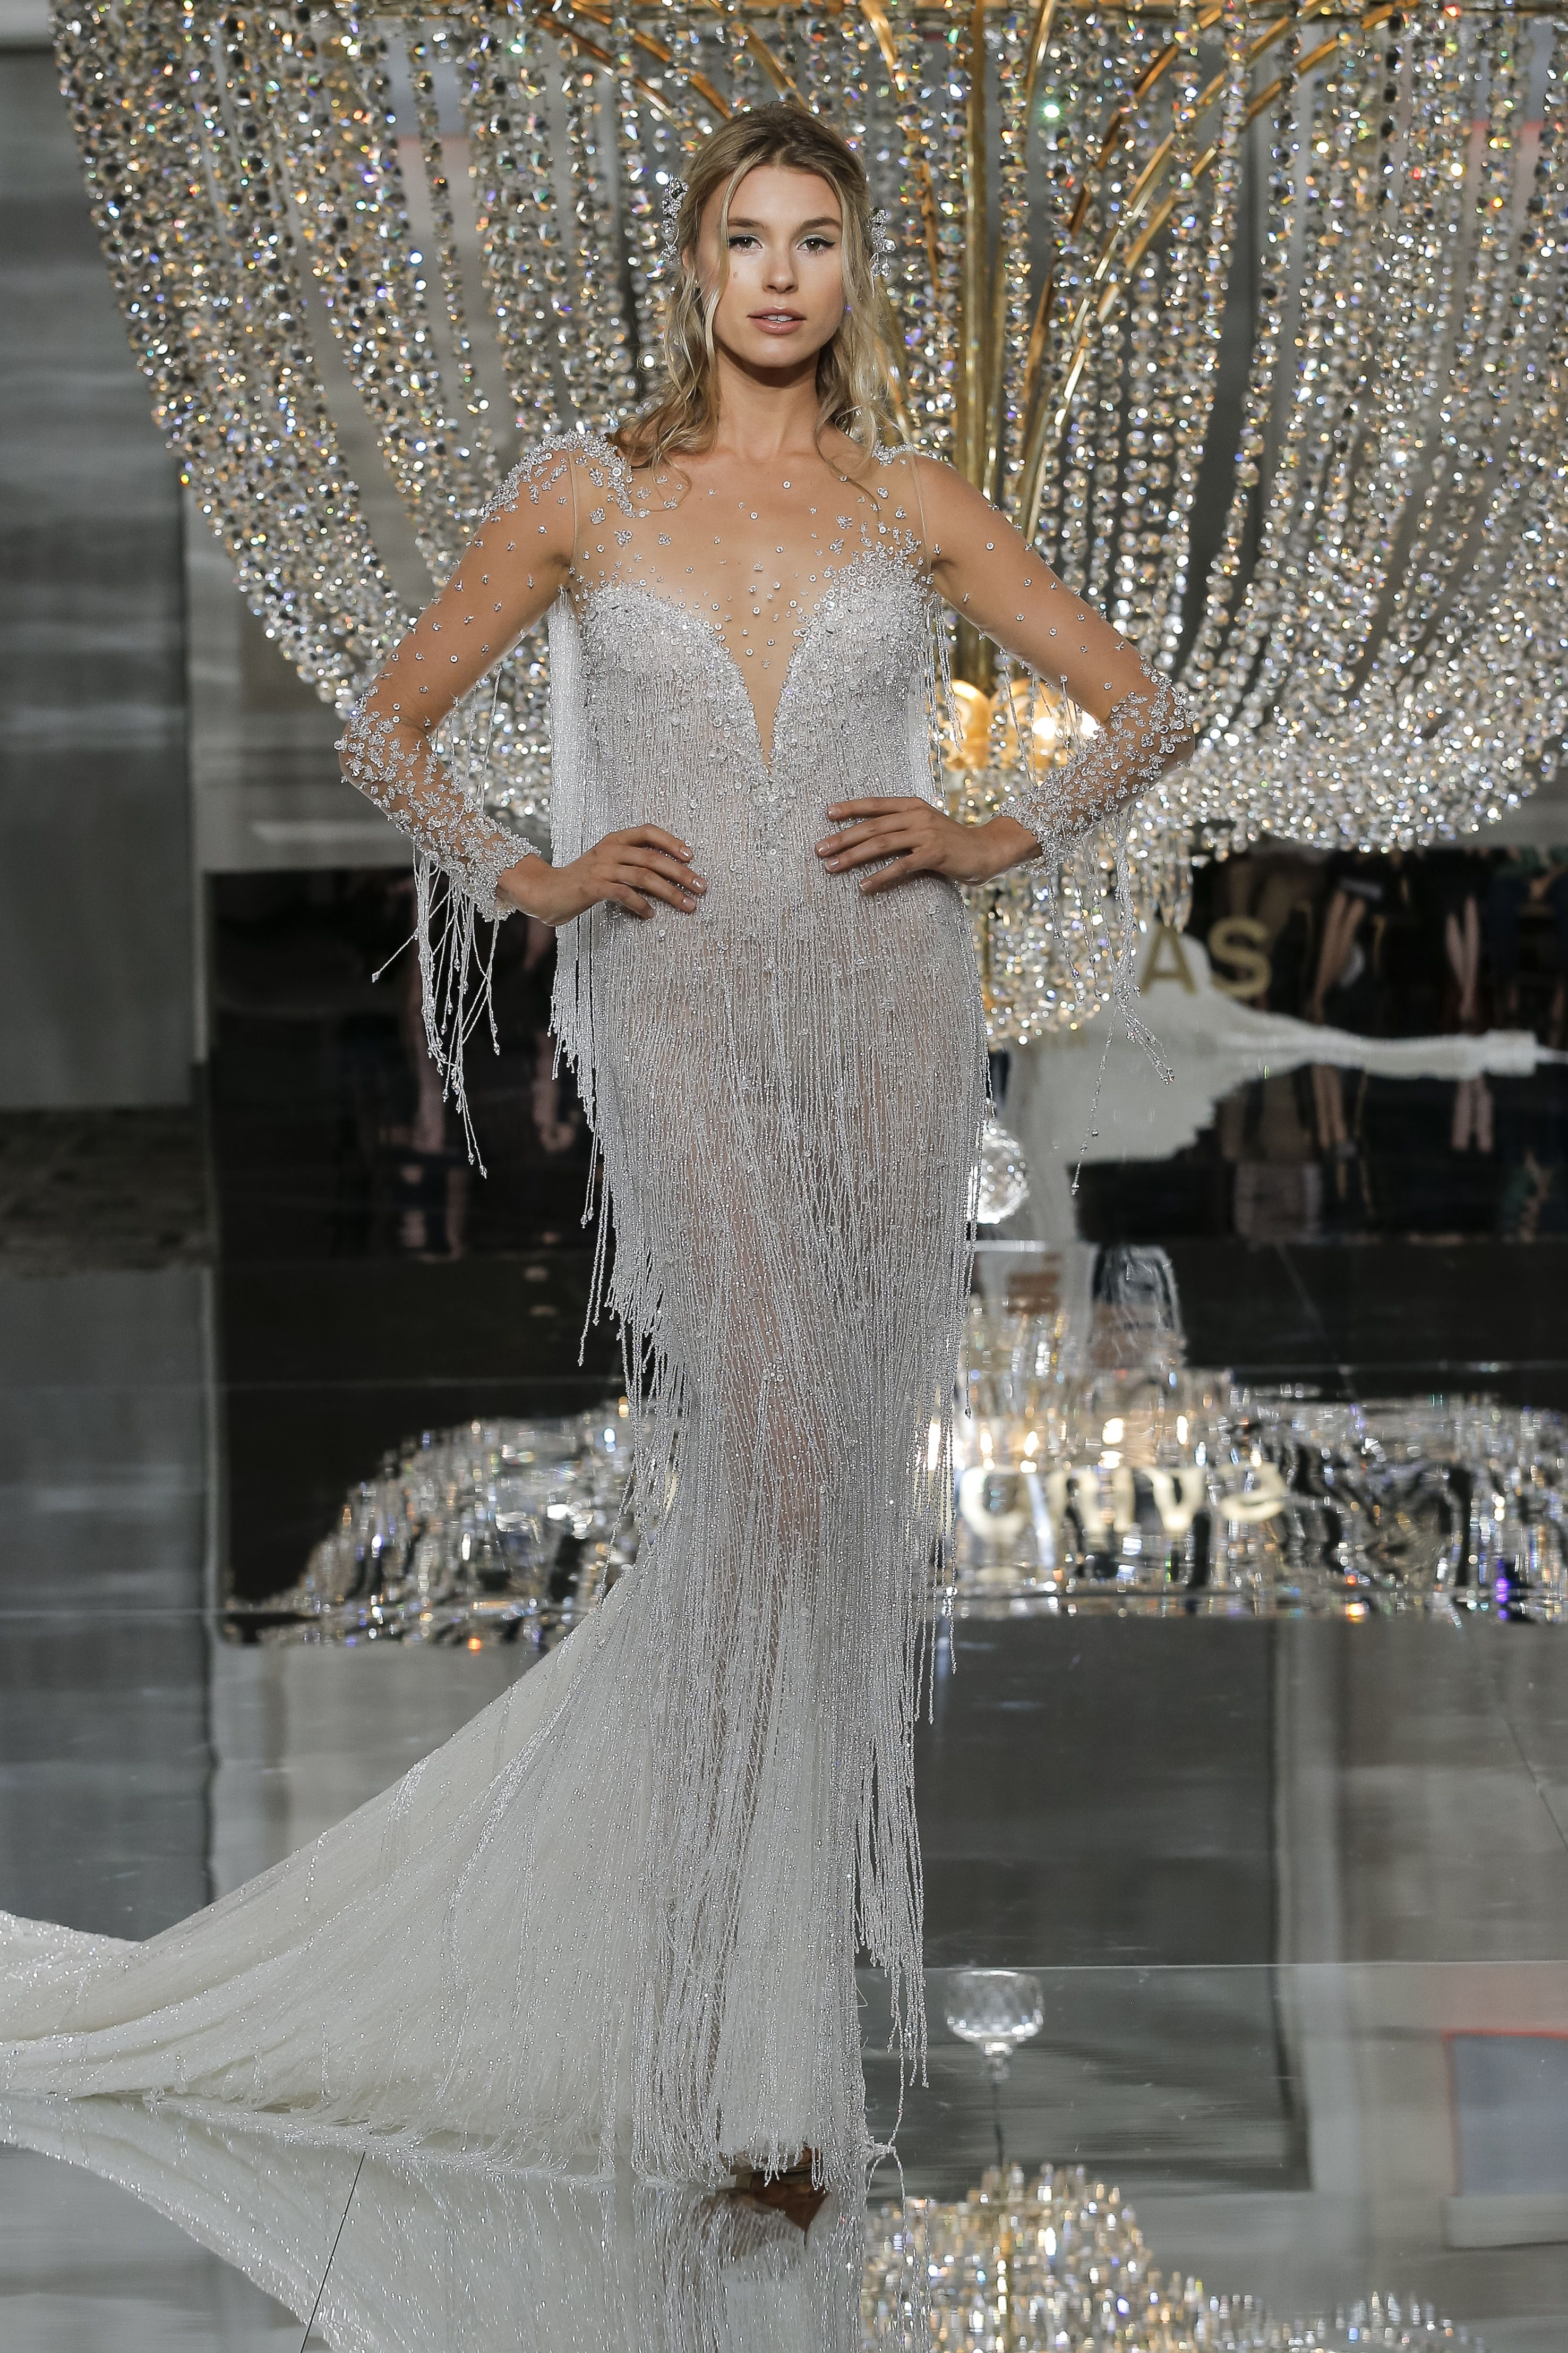 RIVA dress from ATELIER PRONOVIAS | NYC SHOW 2018 COLLECTION | Pinterest